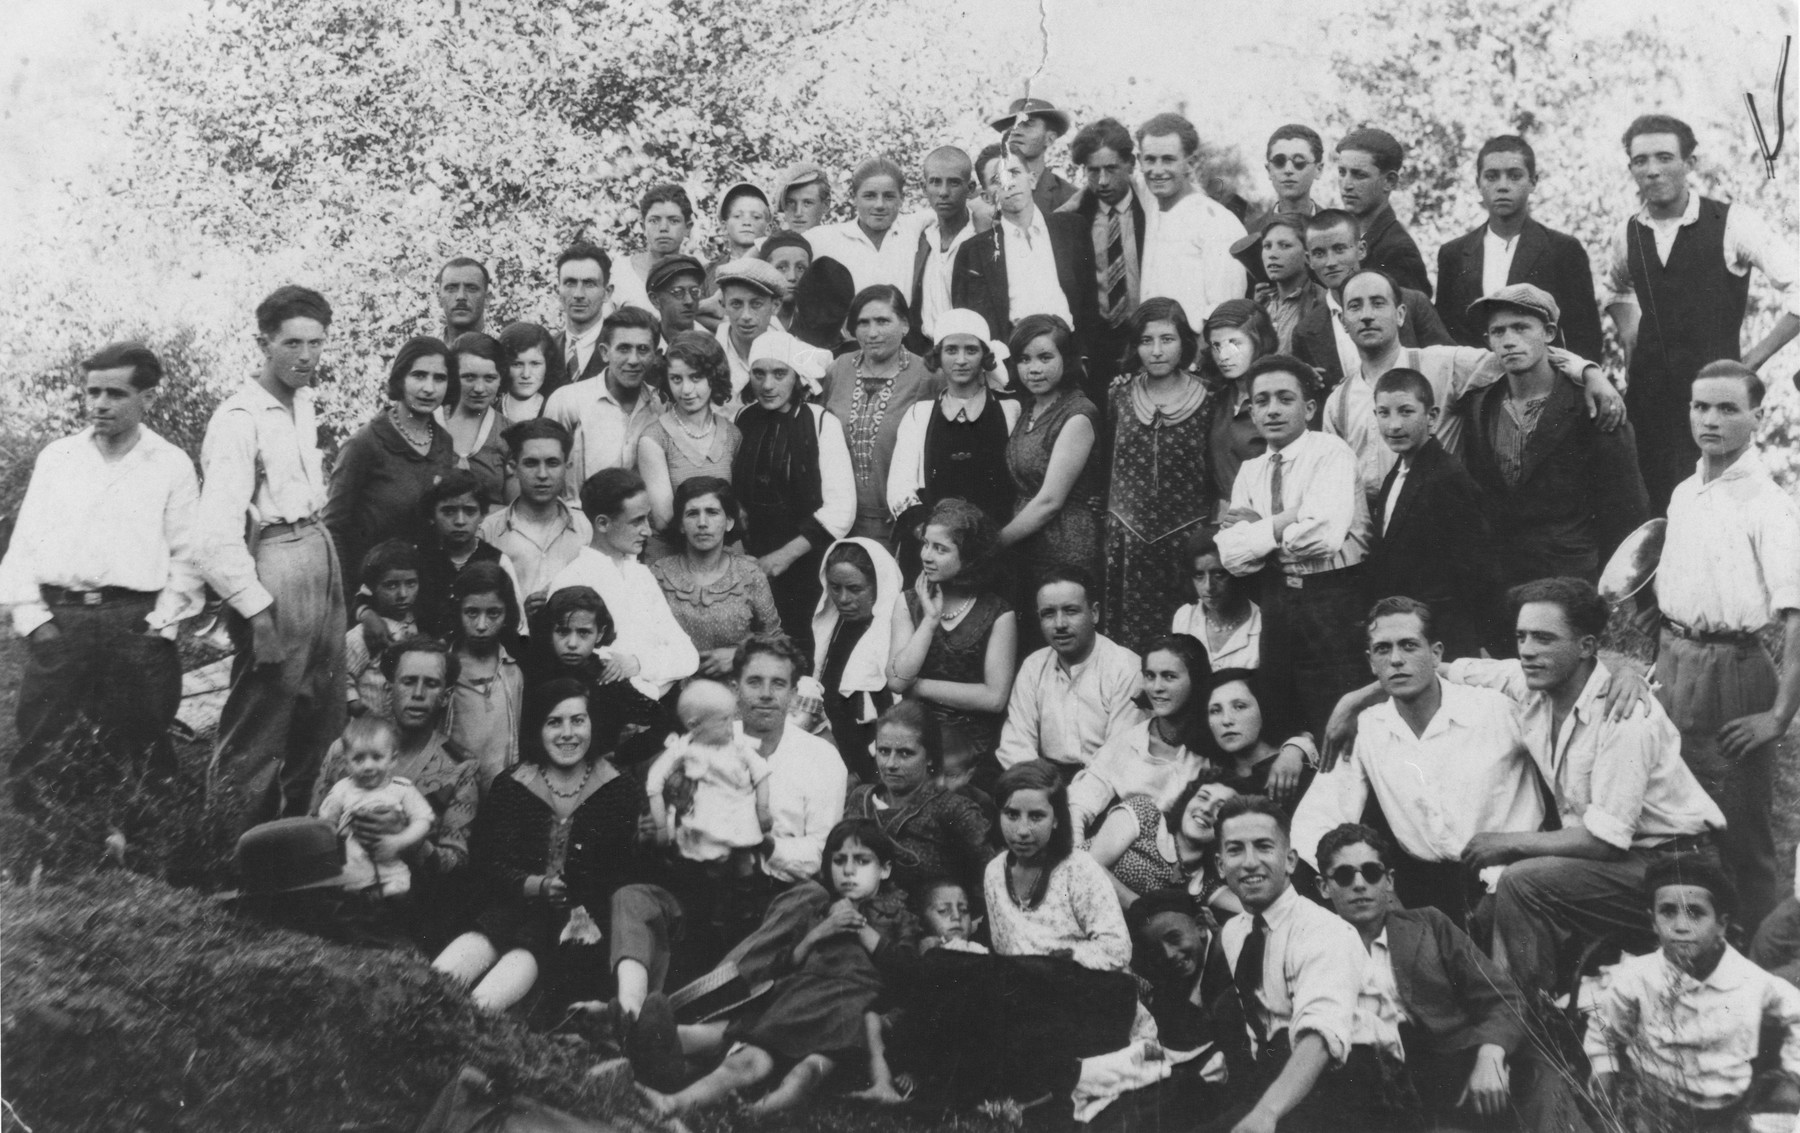 A large group of  young Jewish men and women pose outdoors near a woods in Bitola.